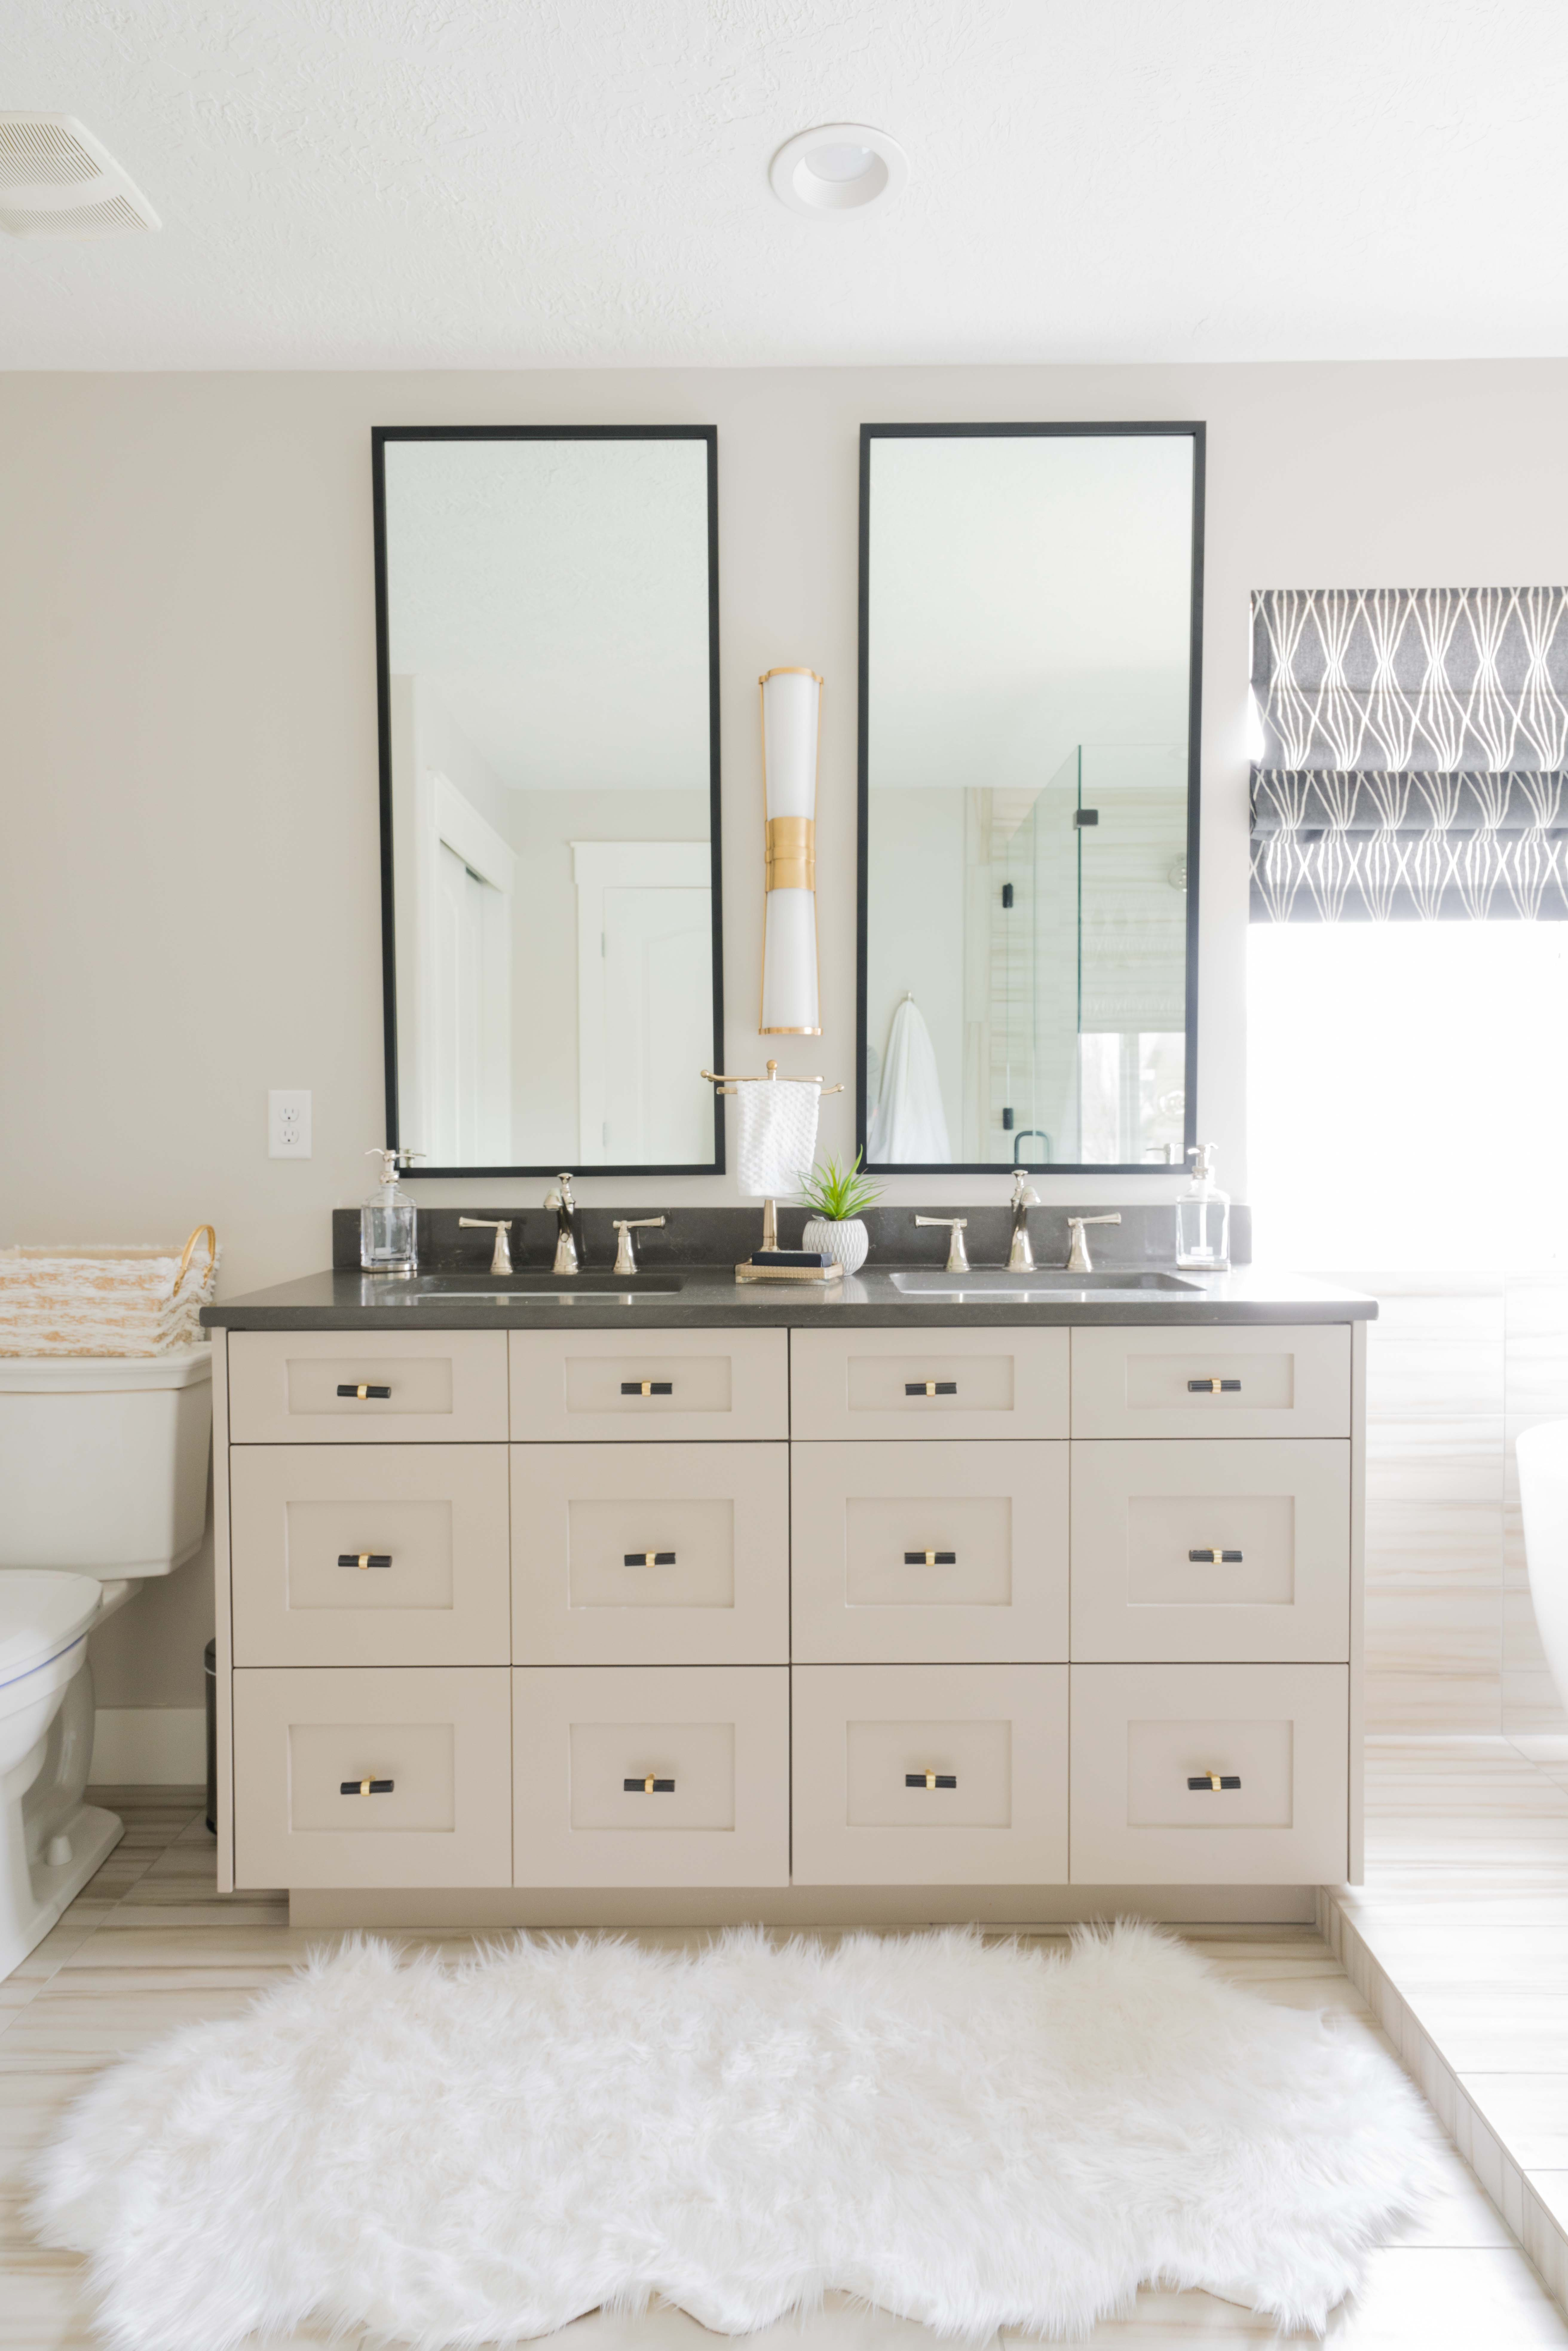 How to decorate with mirrors so your home doesn't look like a fun house